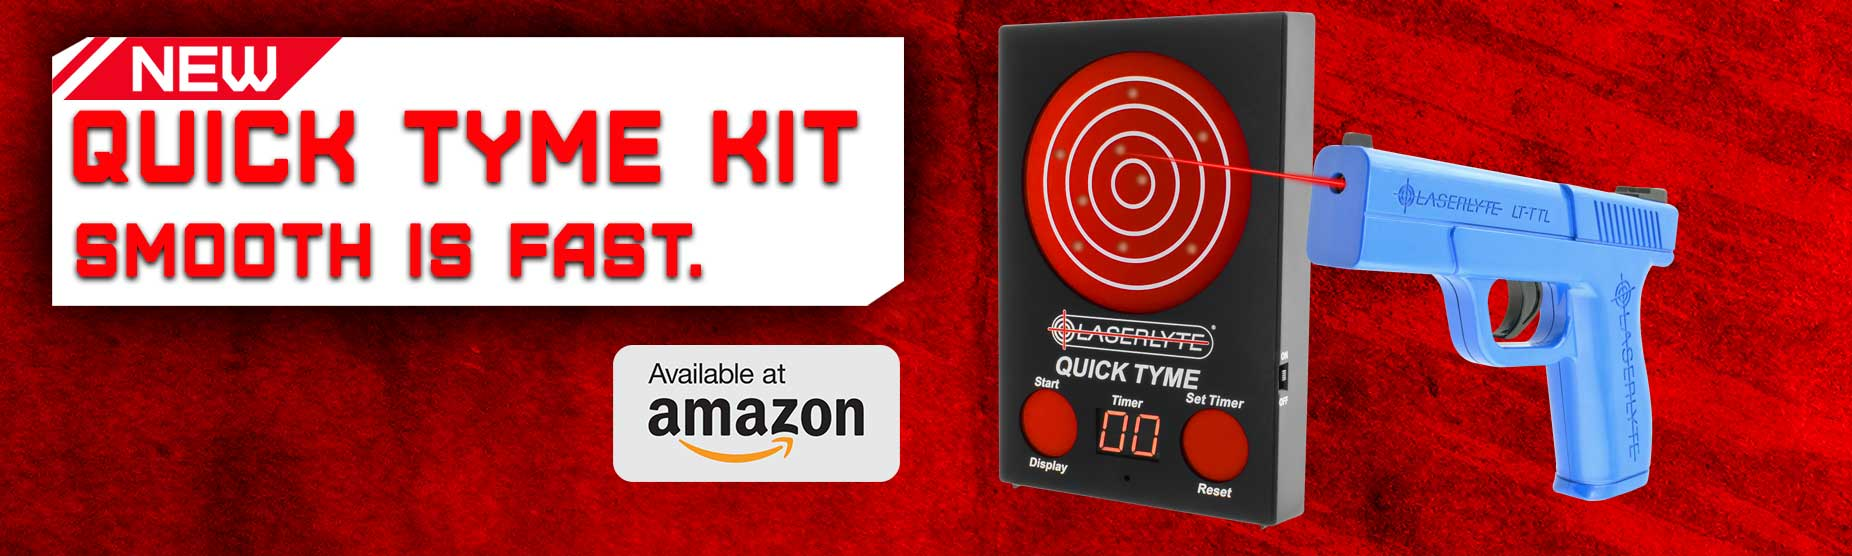 laser quick tyme training kit amazon